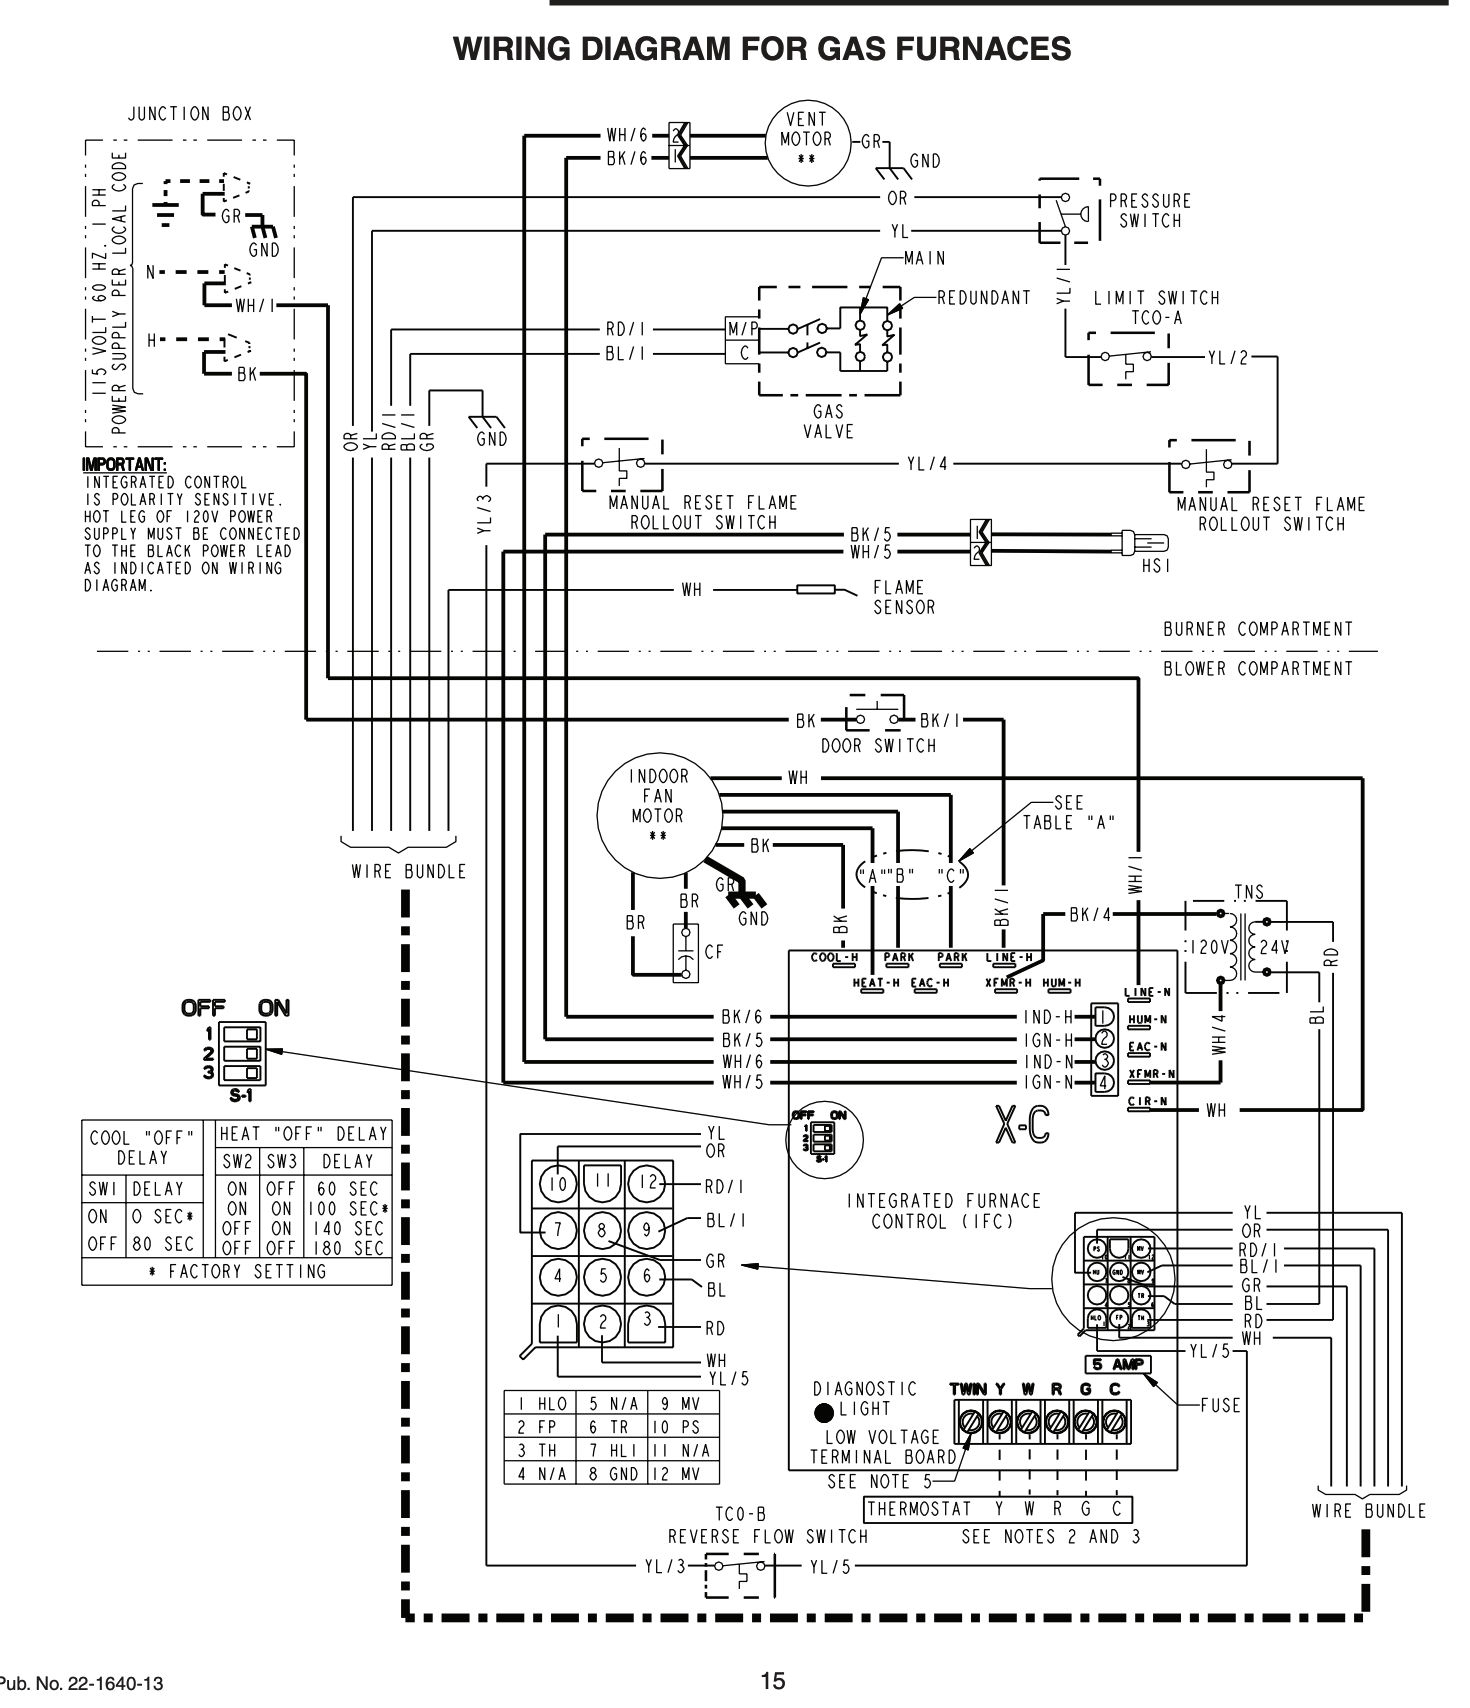 fenwal ke554695 ignition module wiring diagram - wiring diagram high-pair -  high-pair.zaafran.it  zaafran.it